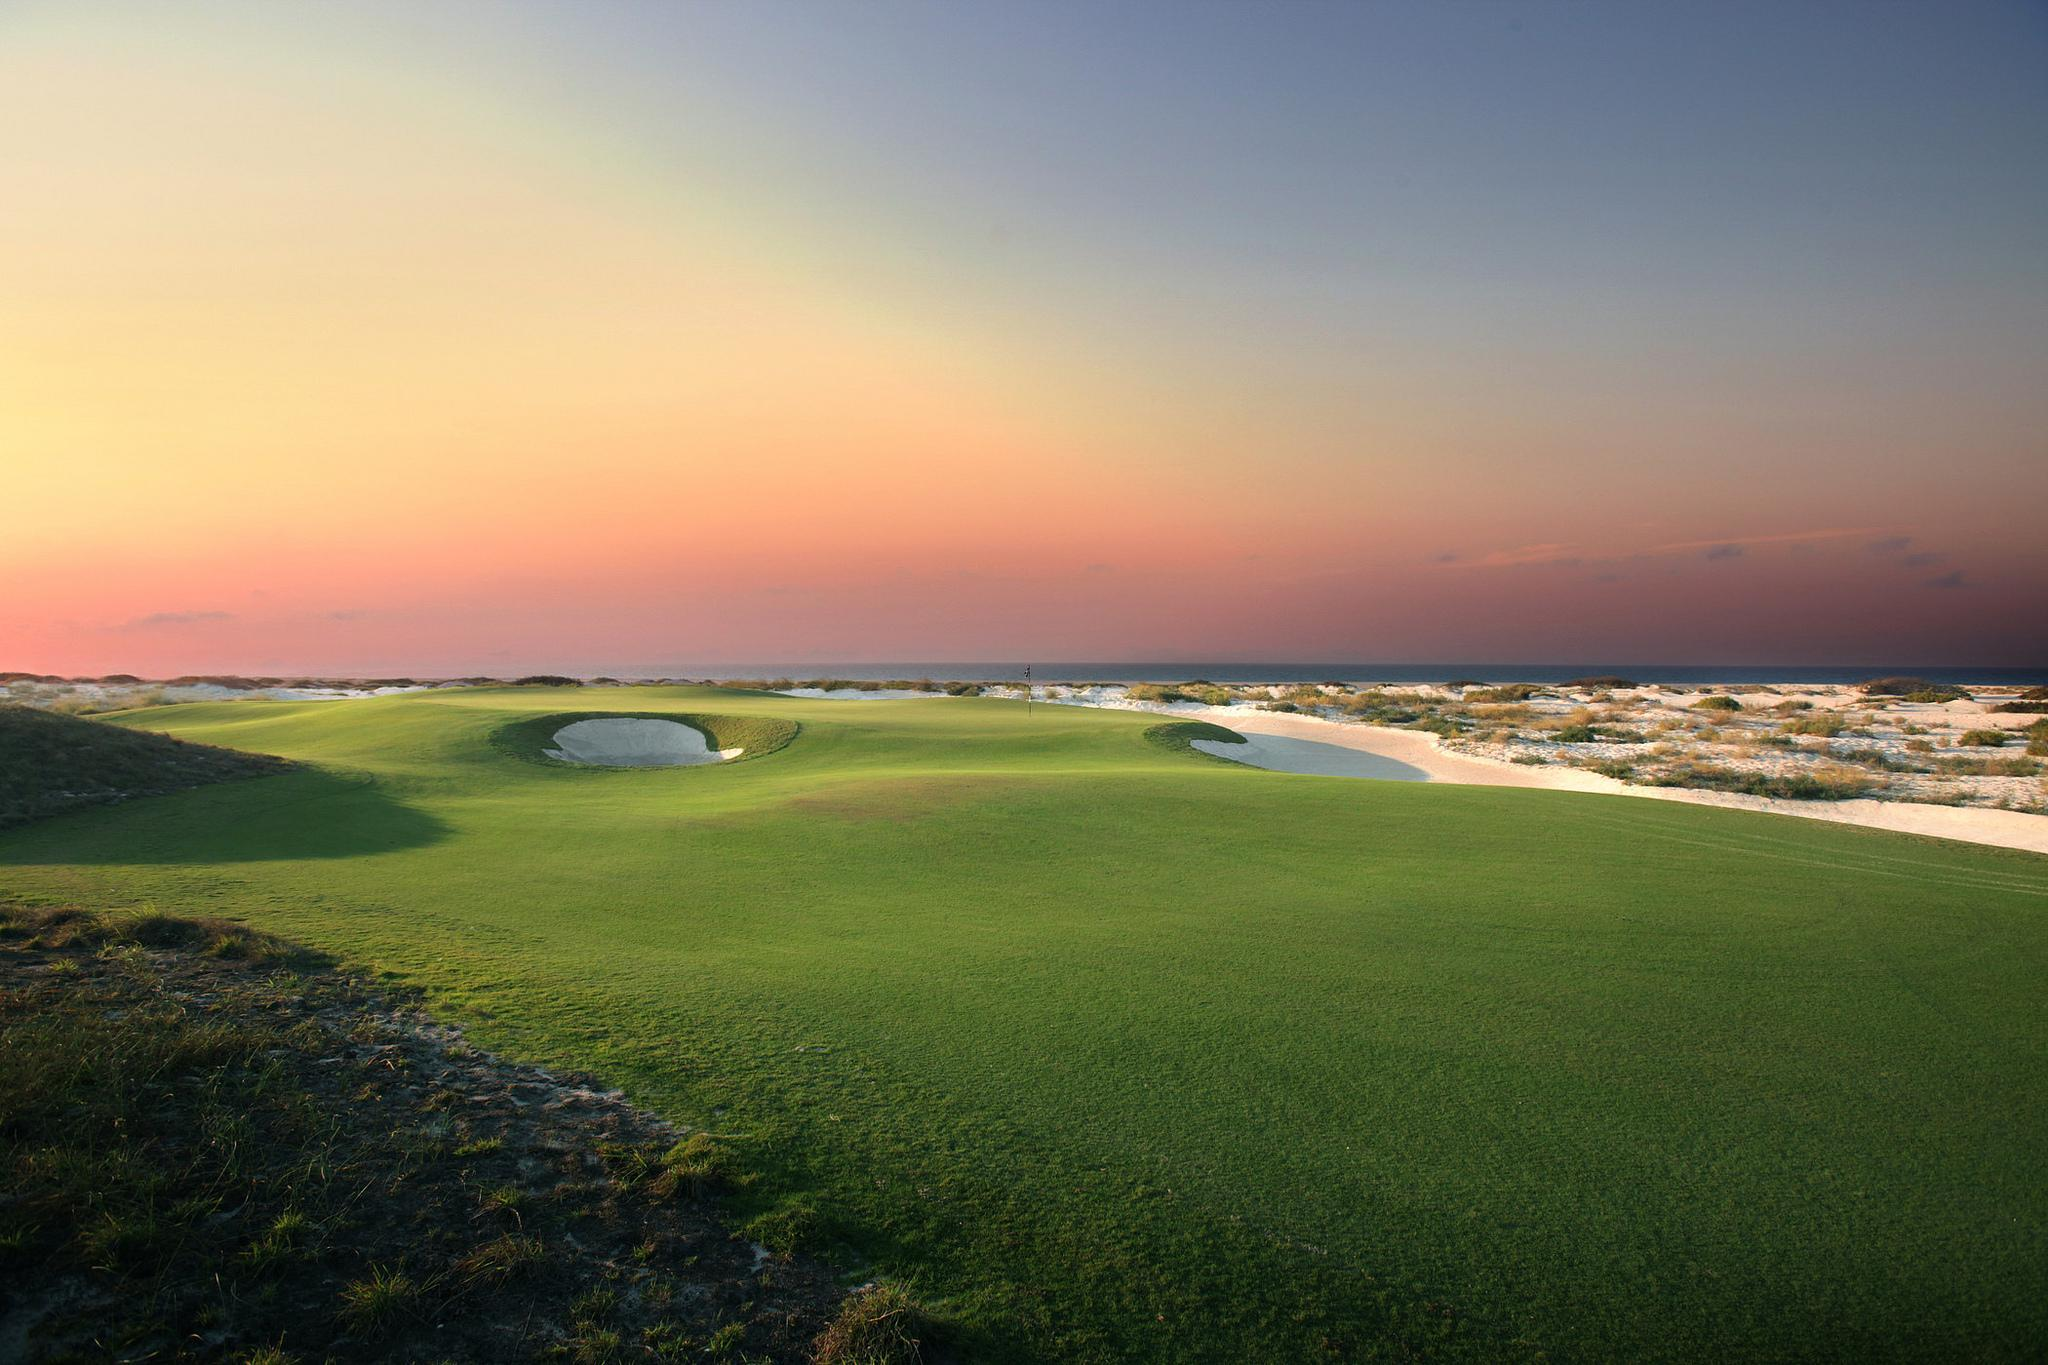 Golf HD Desktop Wallpapers for Widescreen, High Definition, Mobile